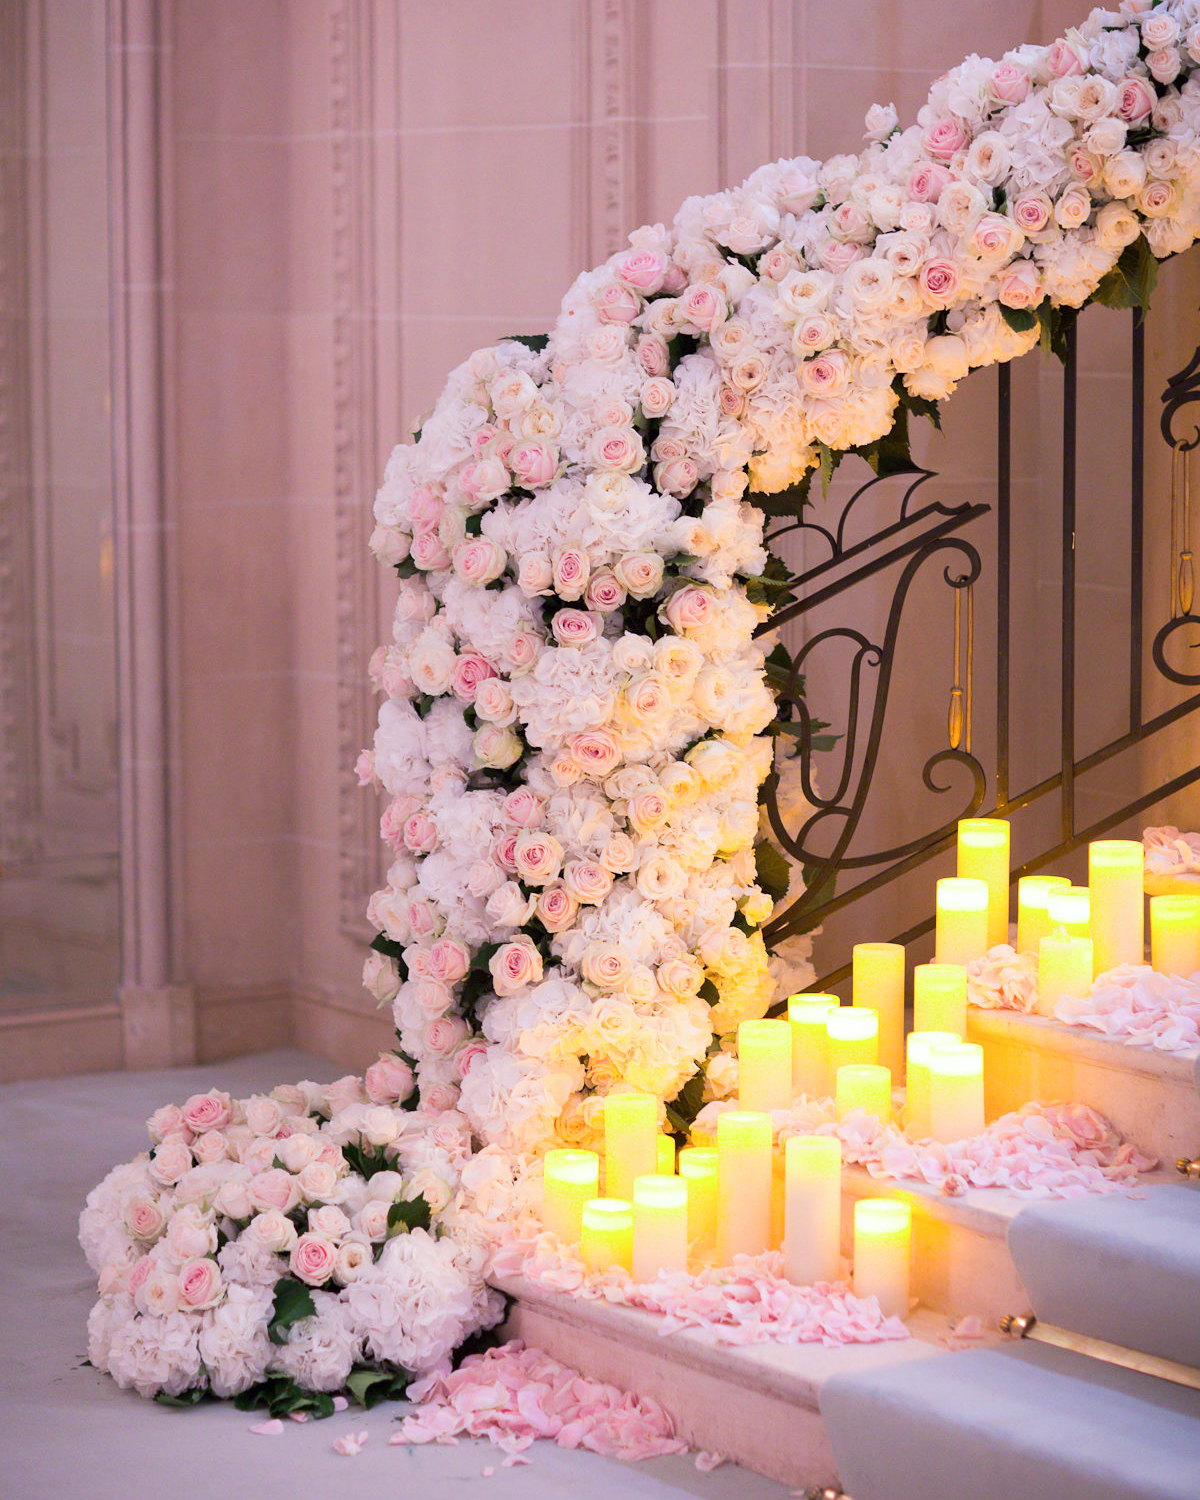 stair banister decor candle light pink roses and white hydrangea